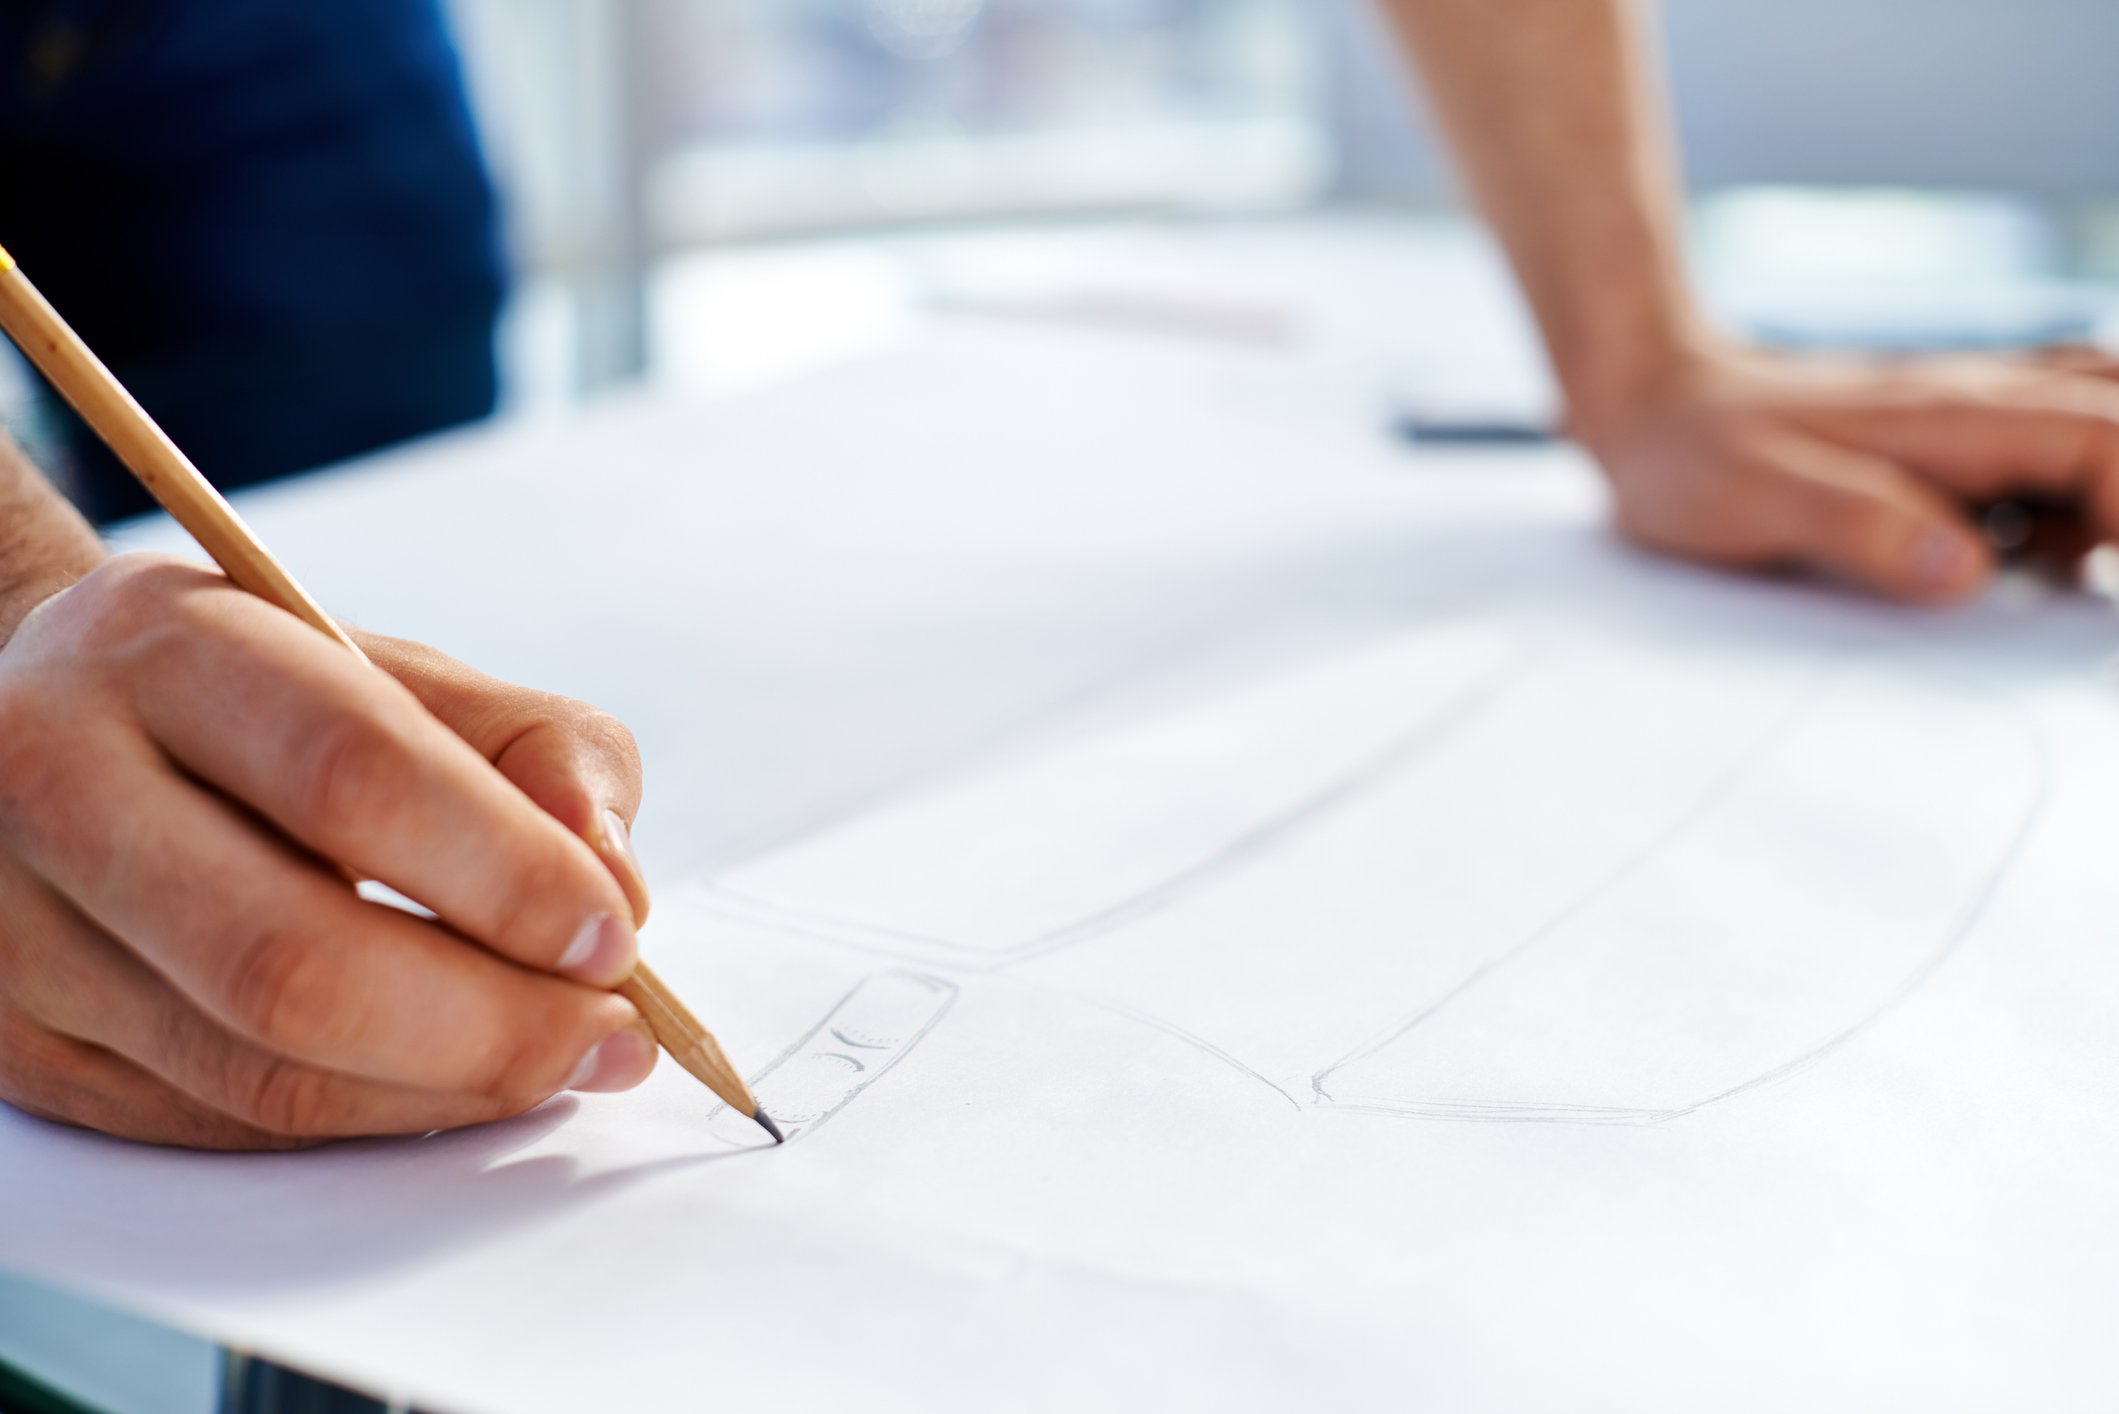 Together we create an idea that comes to life. - Our team will work directly with you to design, discuss, and plan accordingly. No design is out of bounds and no idea is not achievable.